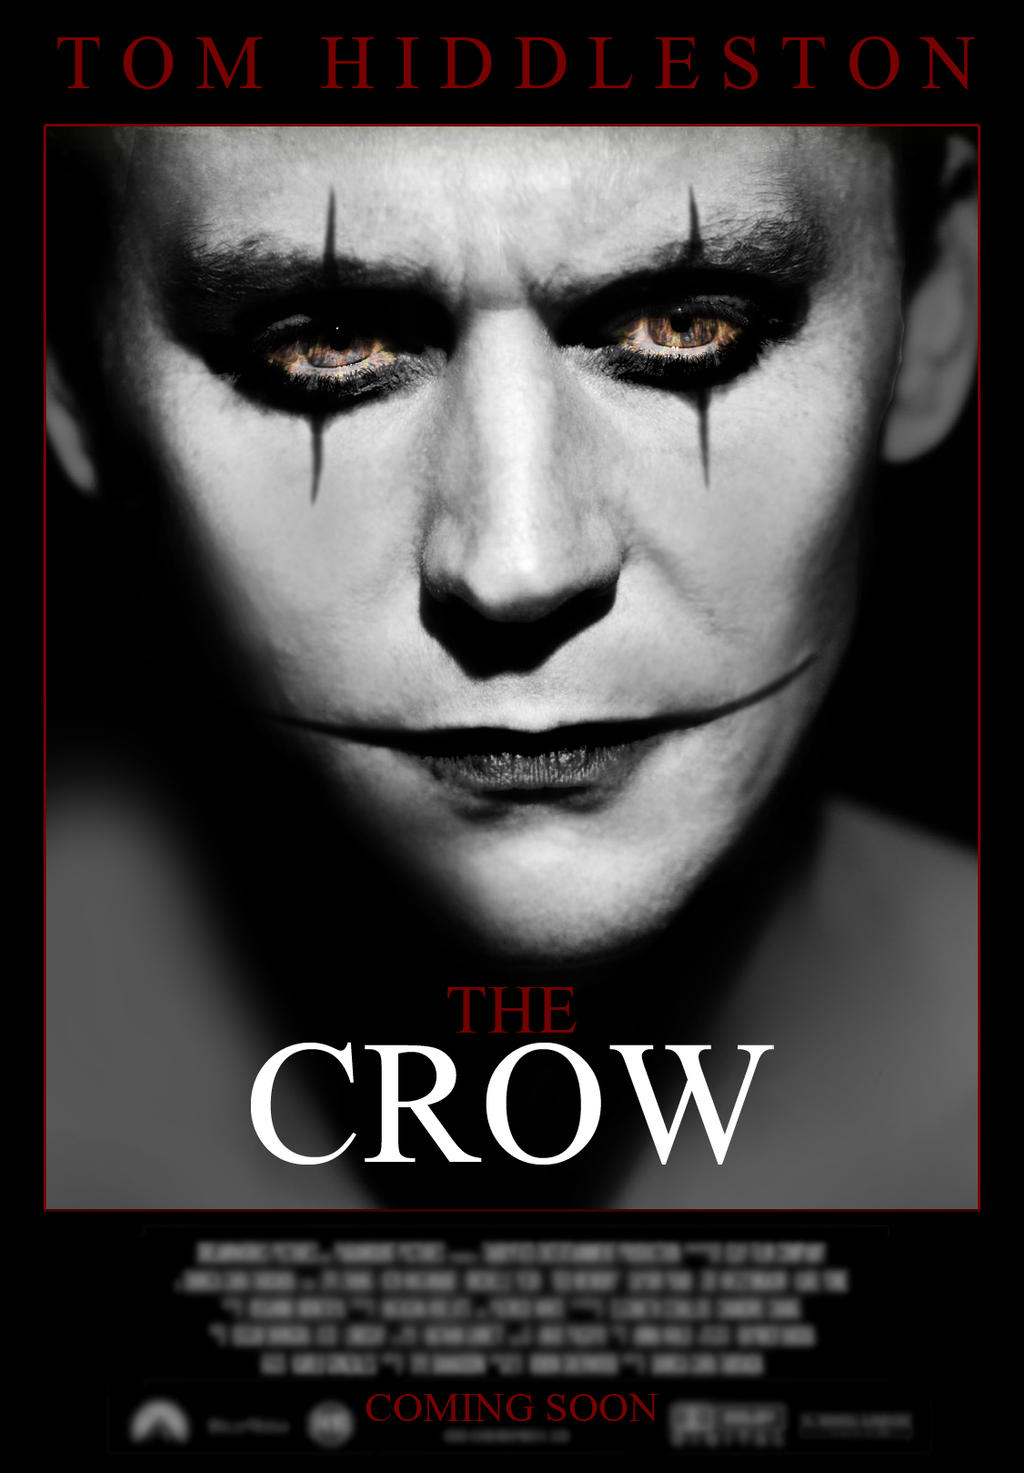 tom hiddleston in talks for the crow